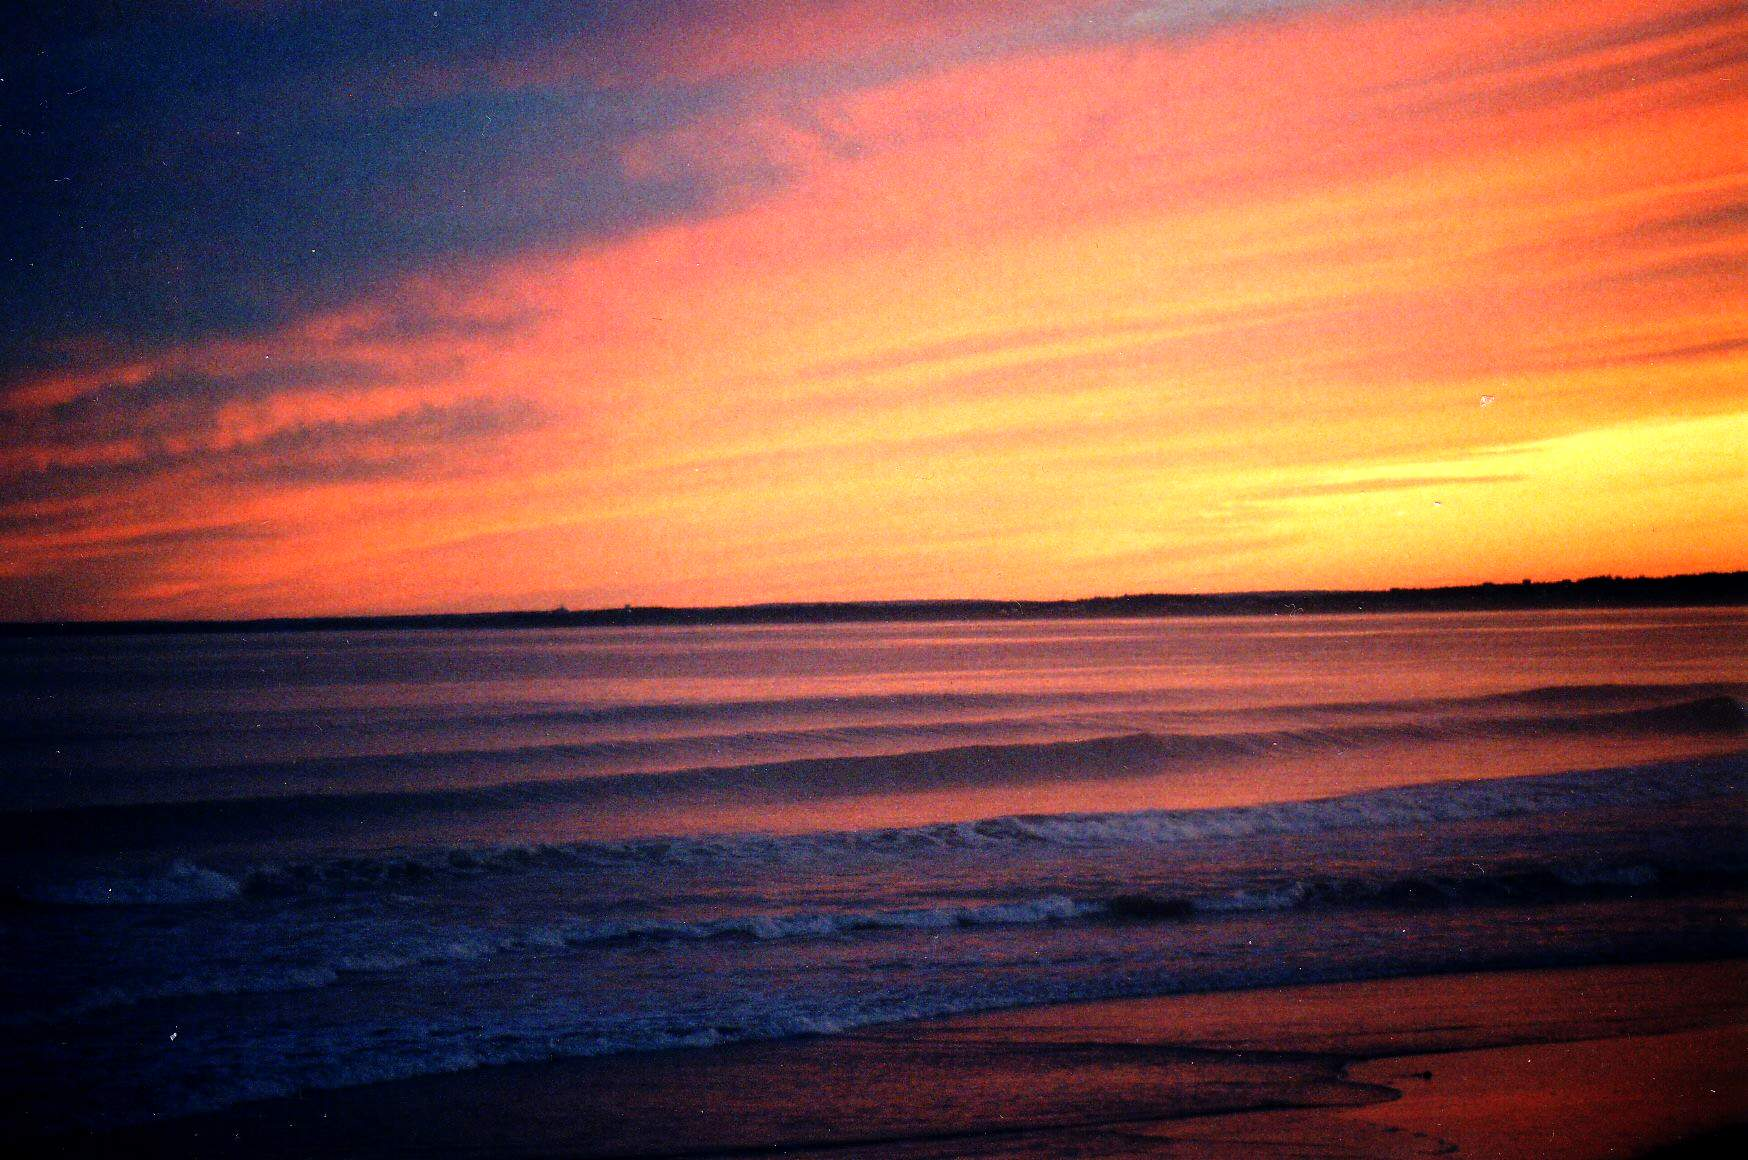 Pink Sunset over the Ocean